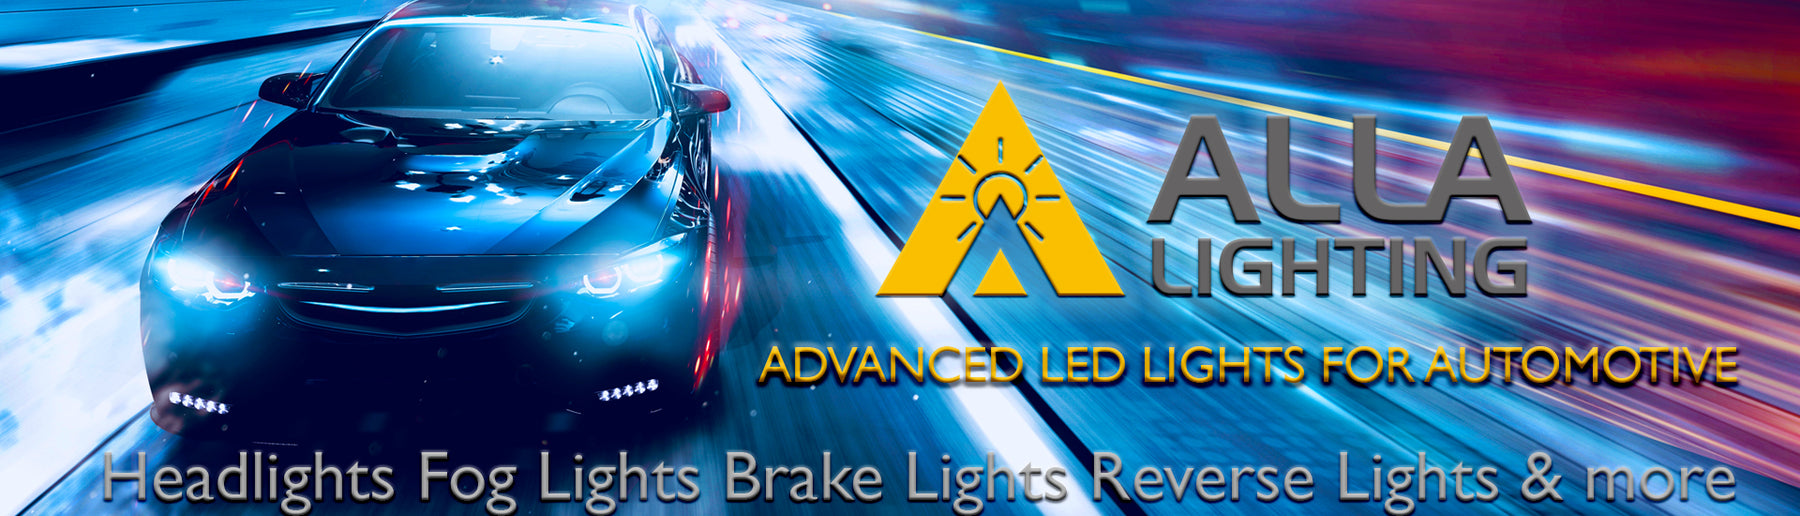 LED Interior Lights Upgrade for Cars Trucks SUVs Vans Boats at ALLALighting.com